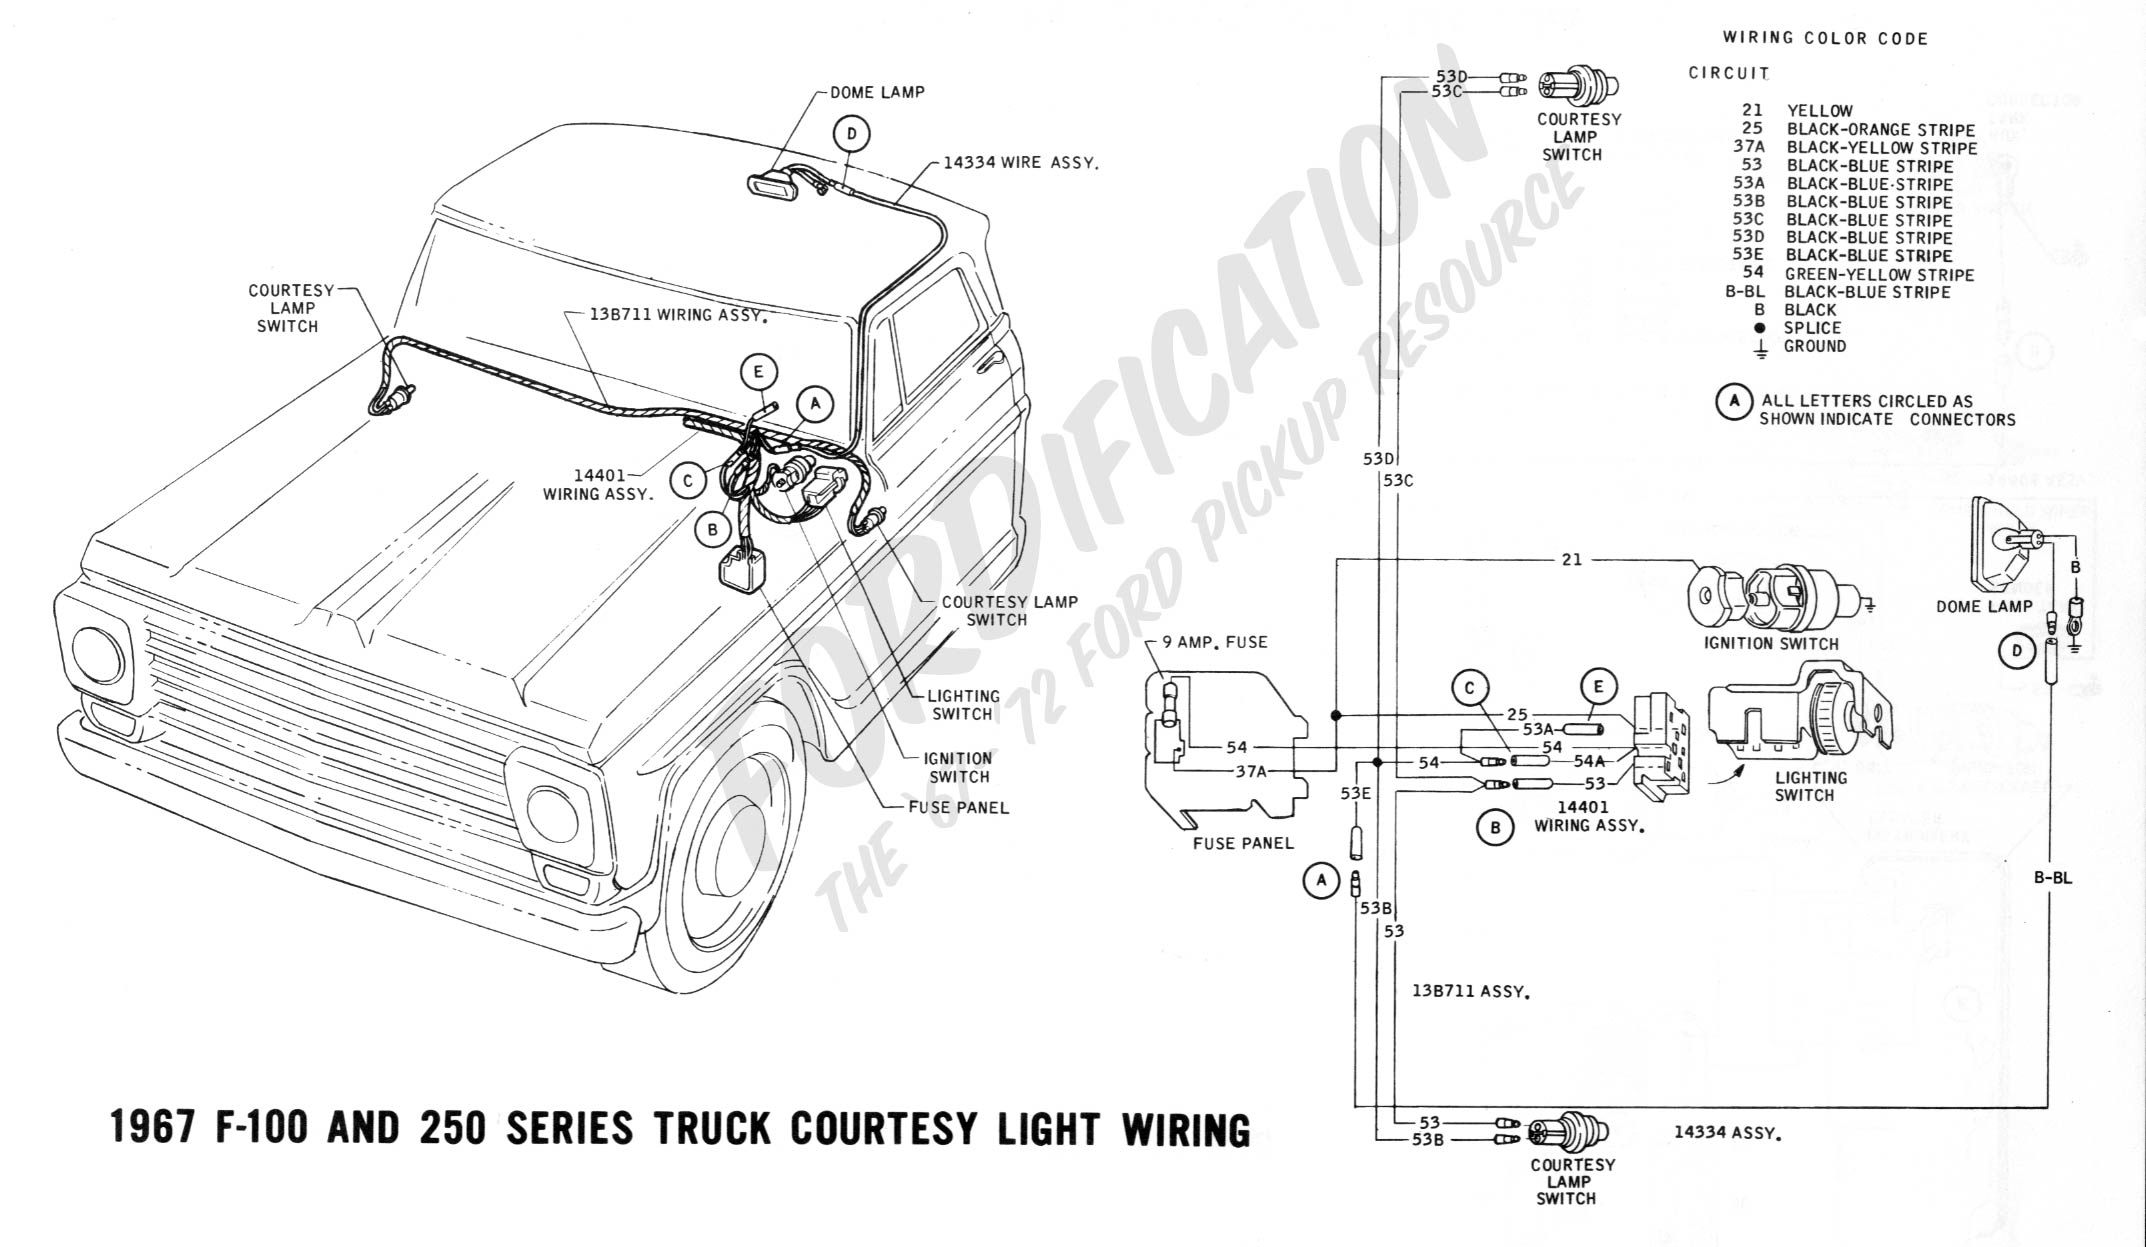 wiring 1967courtesylight wiring in ignition switch in 1966 f100 ford truck enthusiasts forums Ford E 350 Wiring Diagrams at love-stories.co